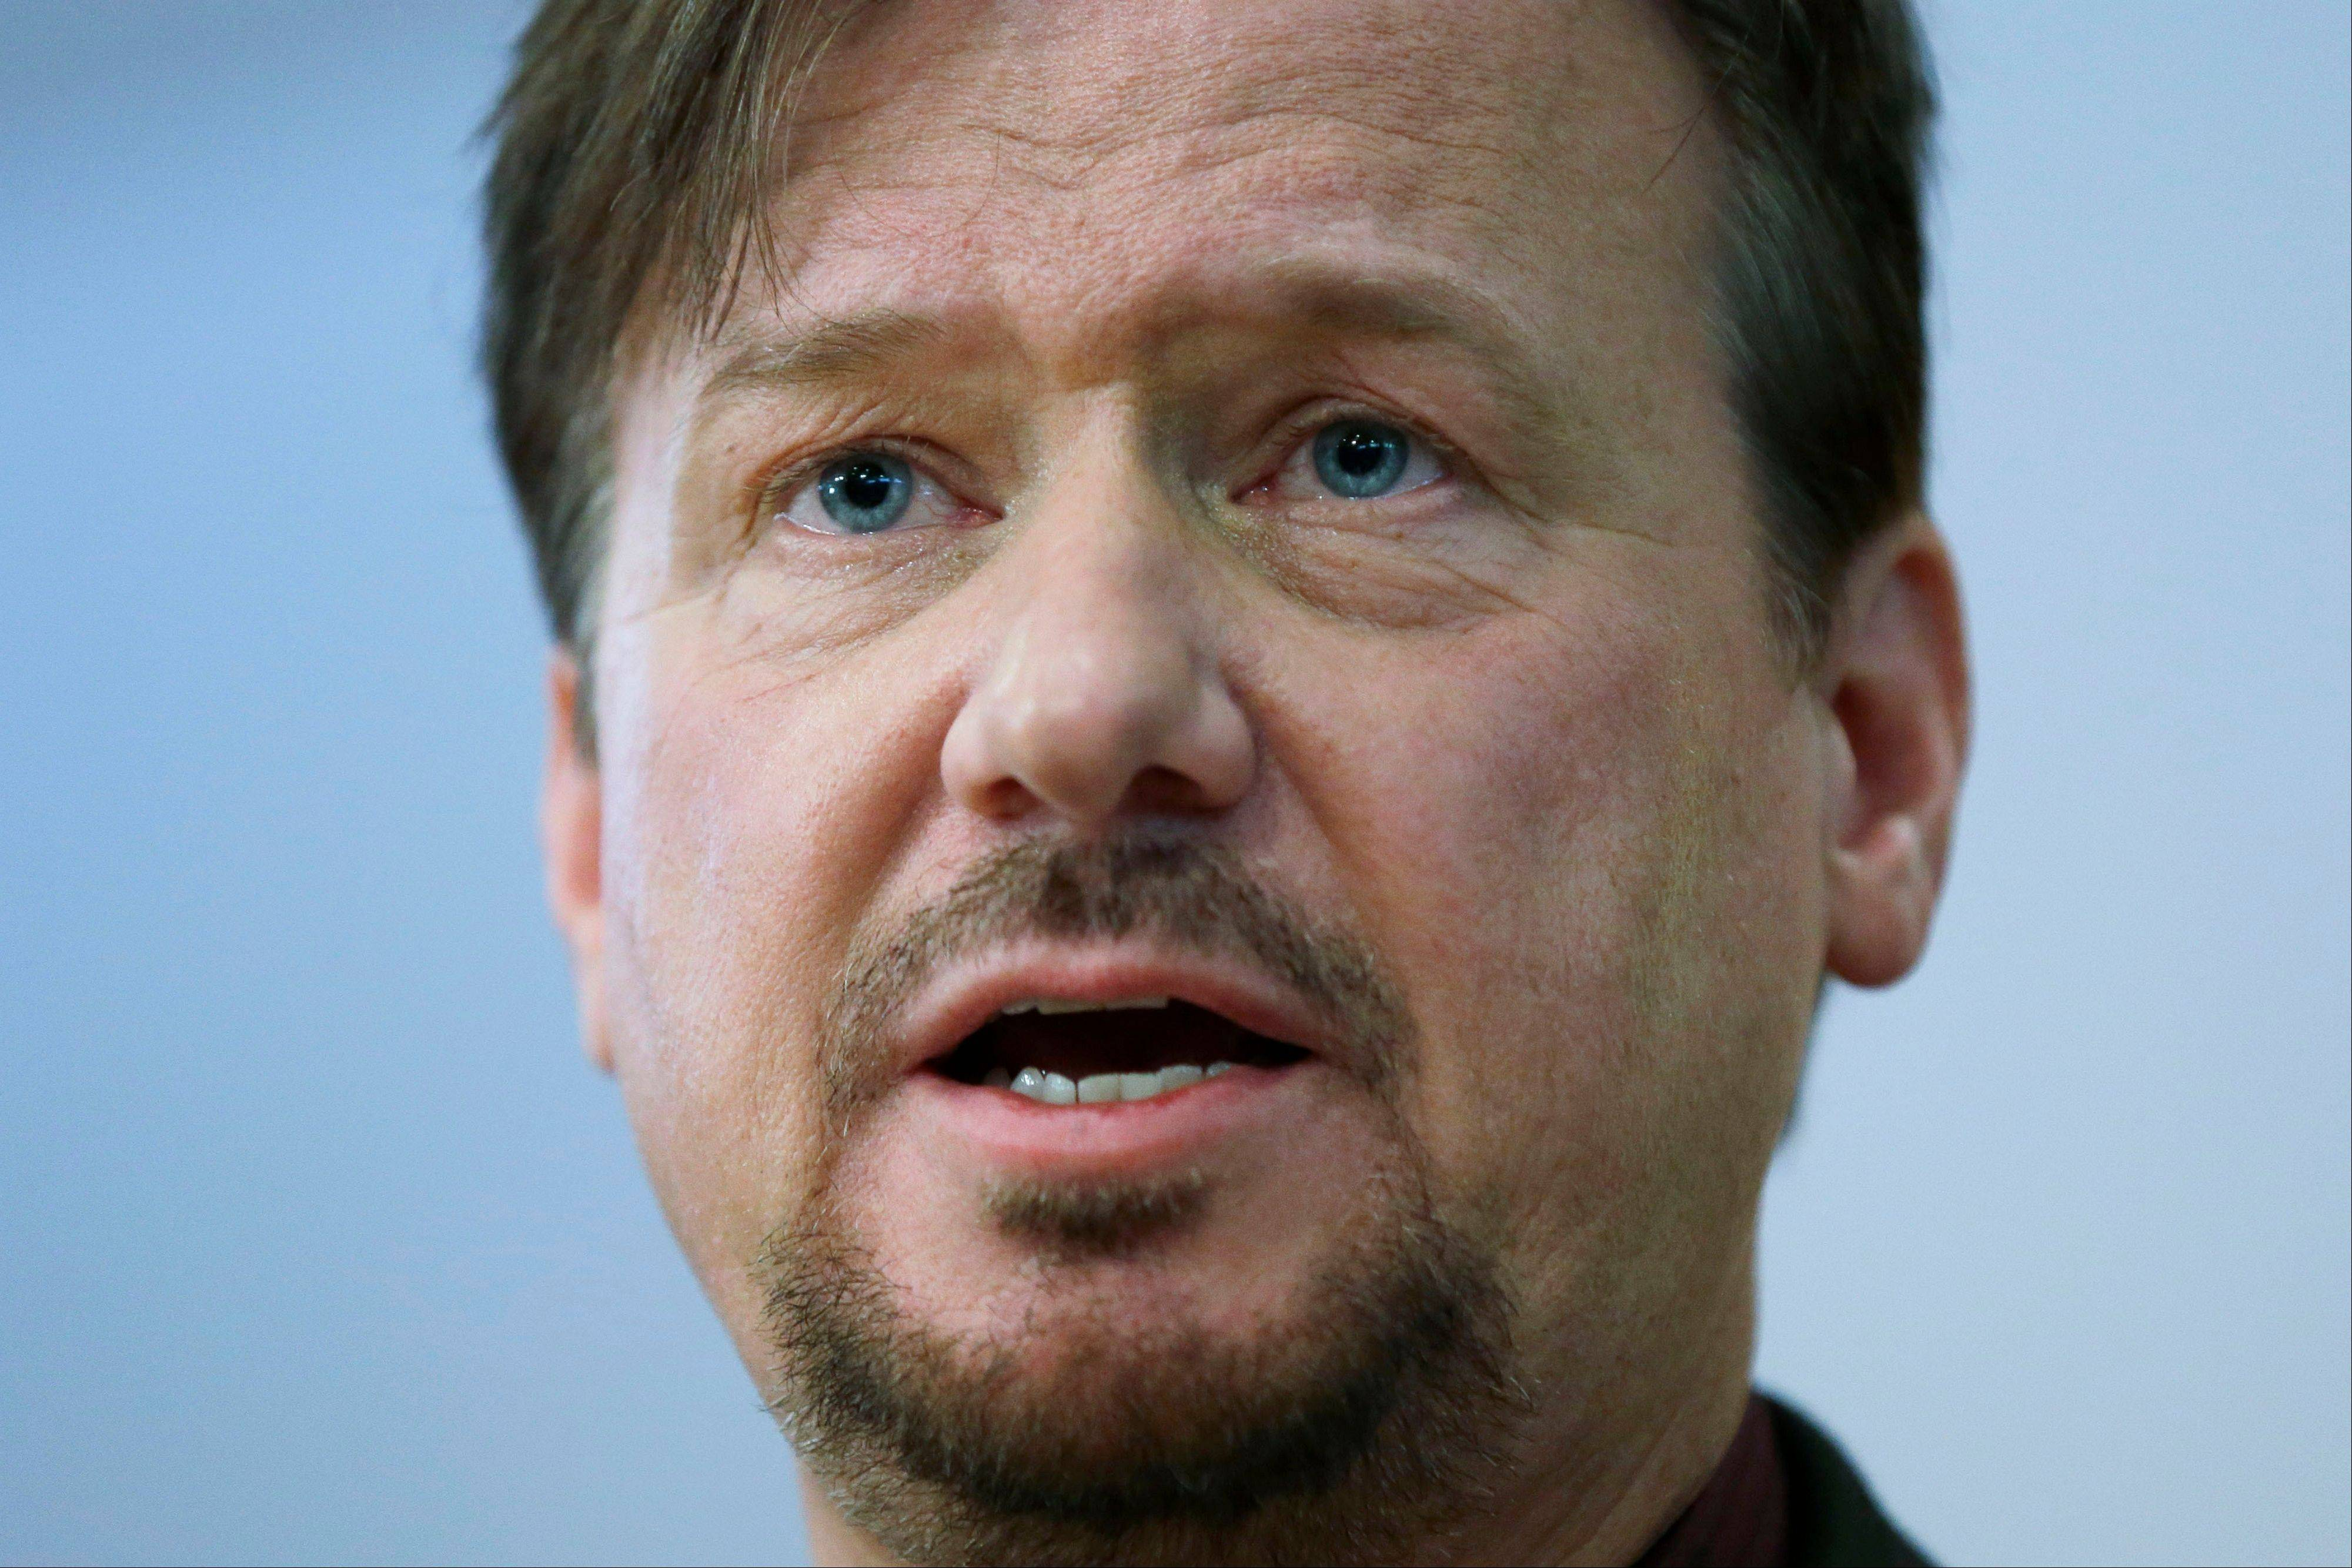 The Rev. Frank Schaefer, a United Methodist clergyman convicted of breaking church law for officiating at his son�s same-sex wedding, said Monday he plans to defy a church order to surrender his credentials for performing the wedding.